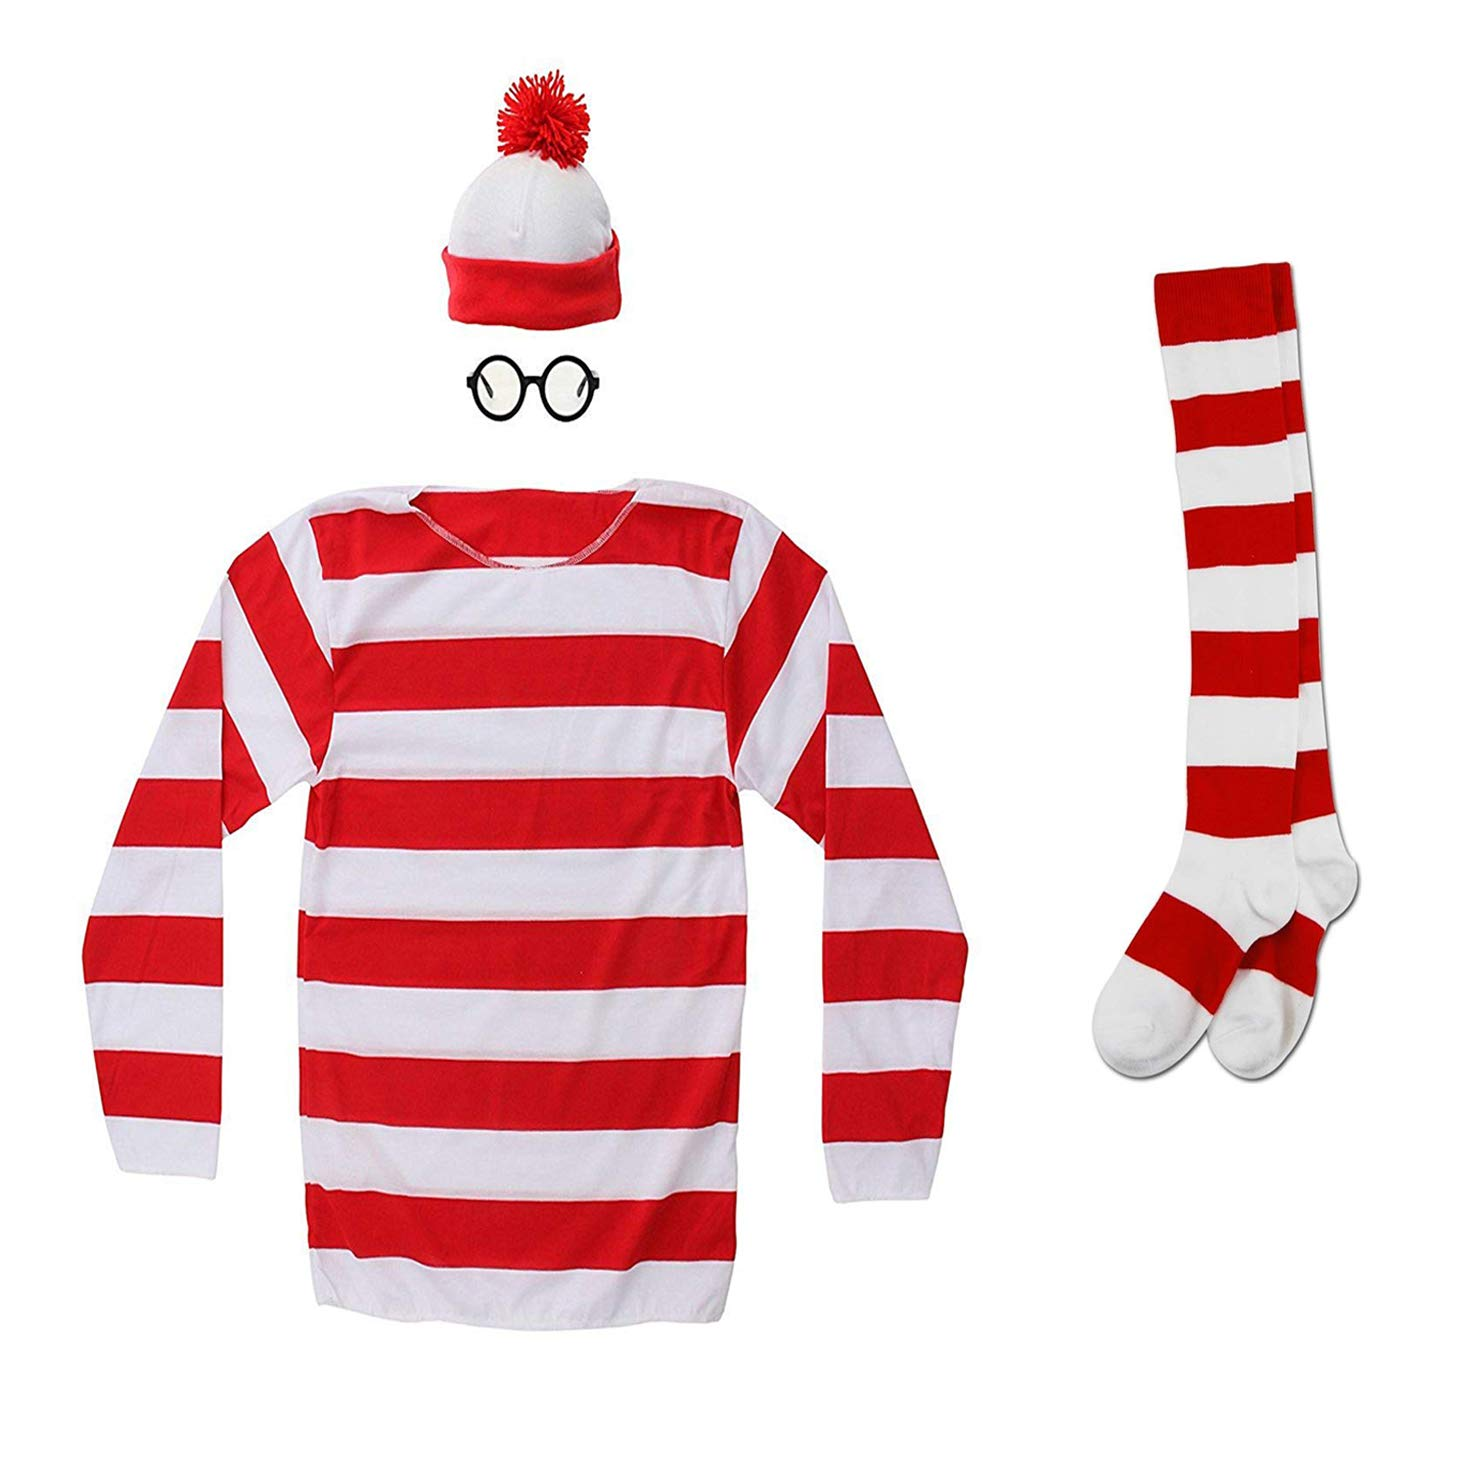 Hilary Ella Where's Waldo Costume,Halloween Costumes,Funny Sweatshirt Outfit Glasses Suits